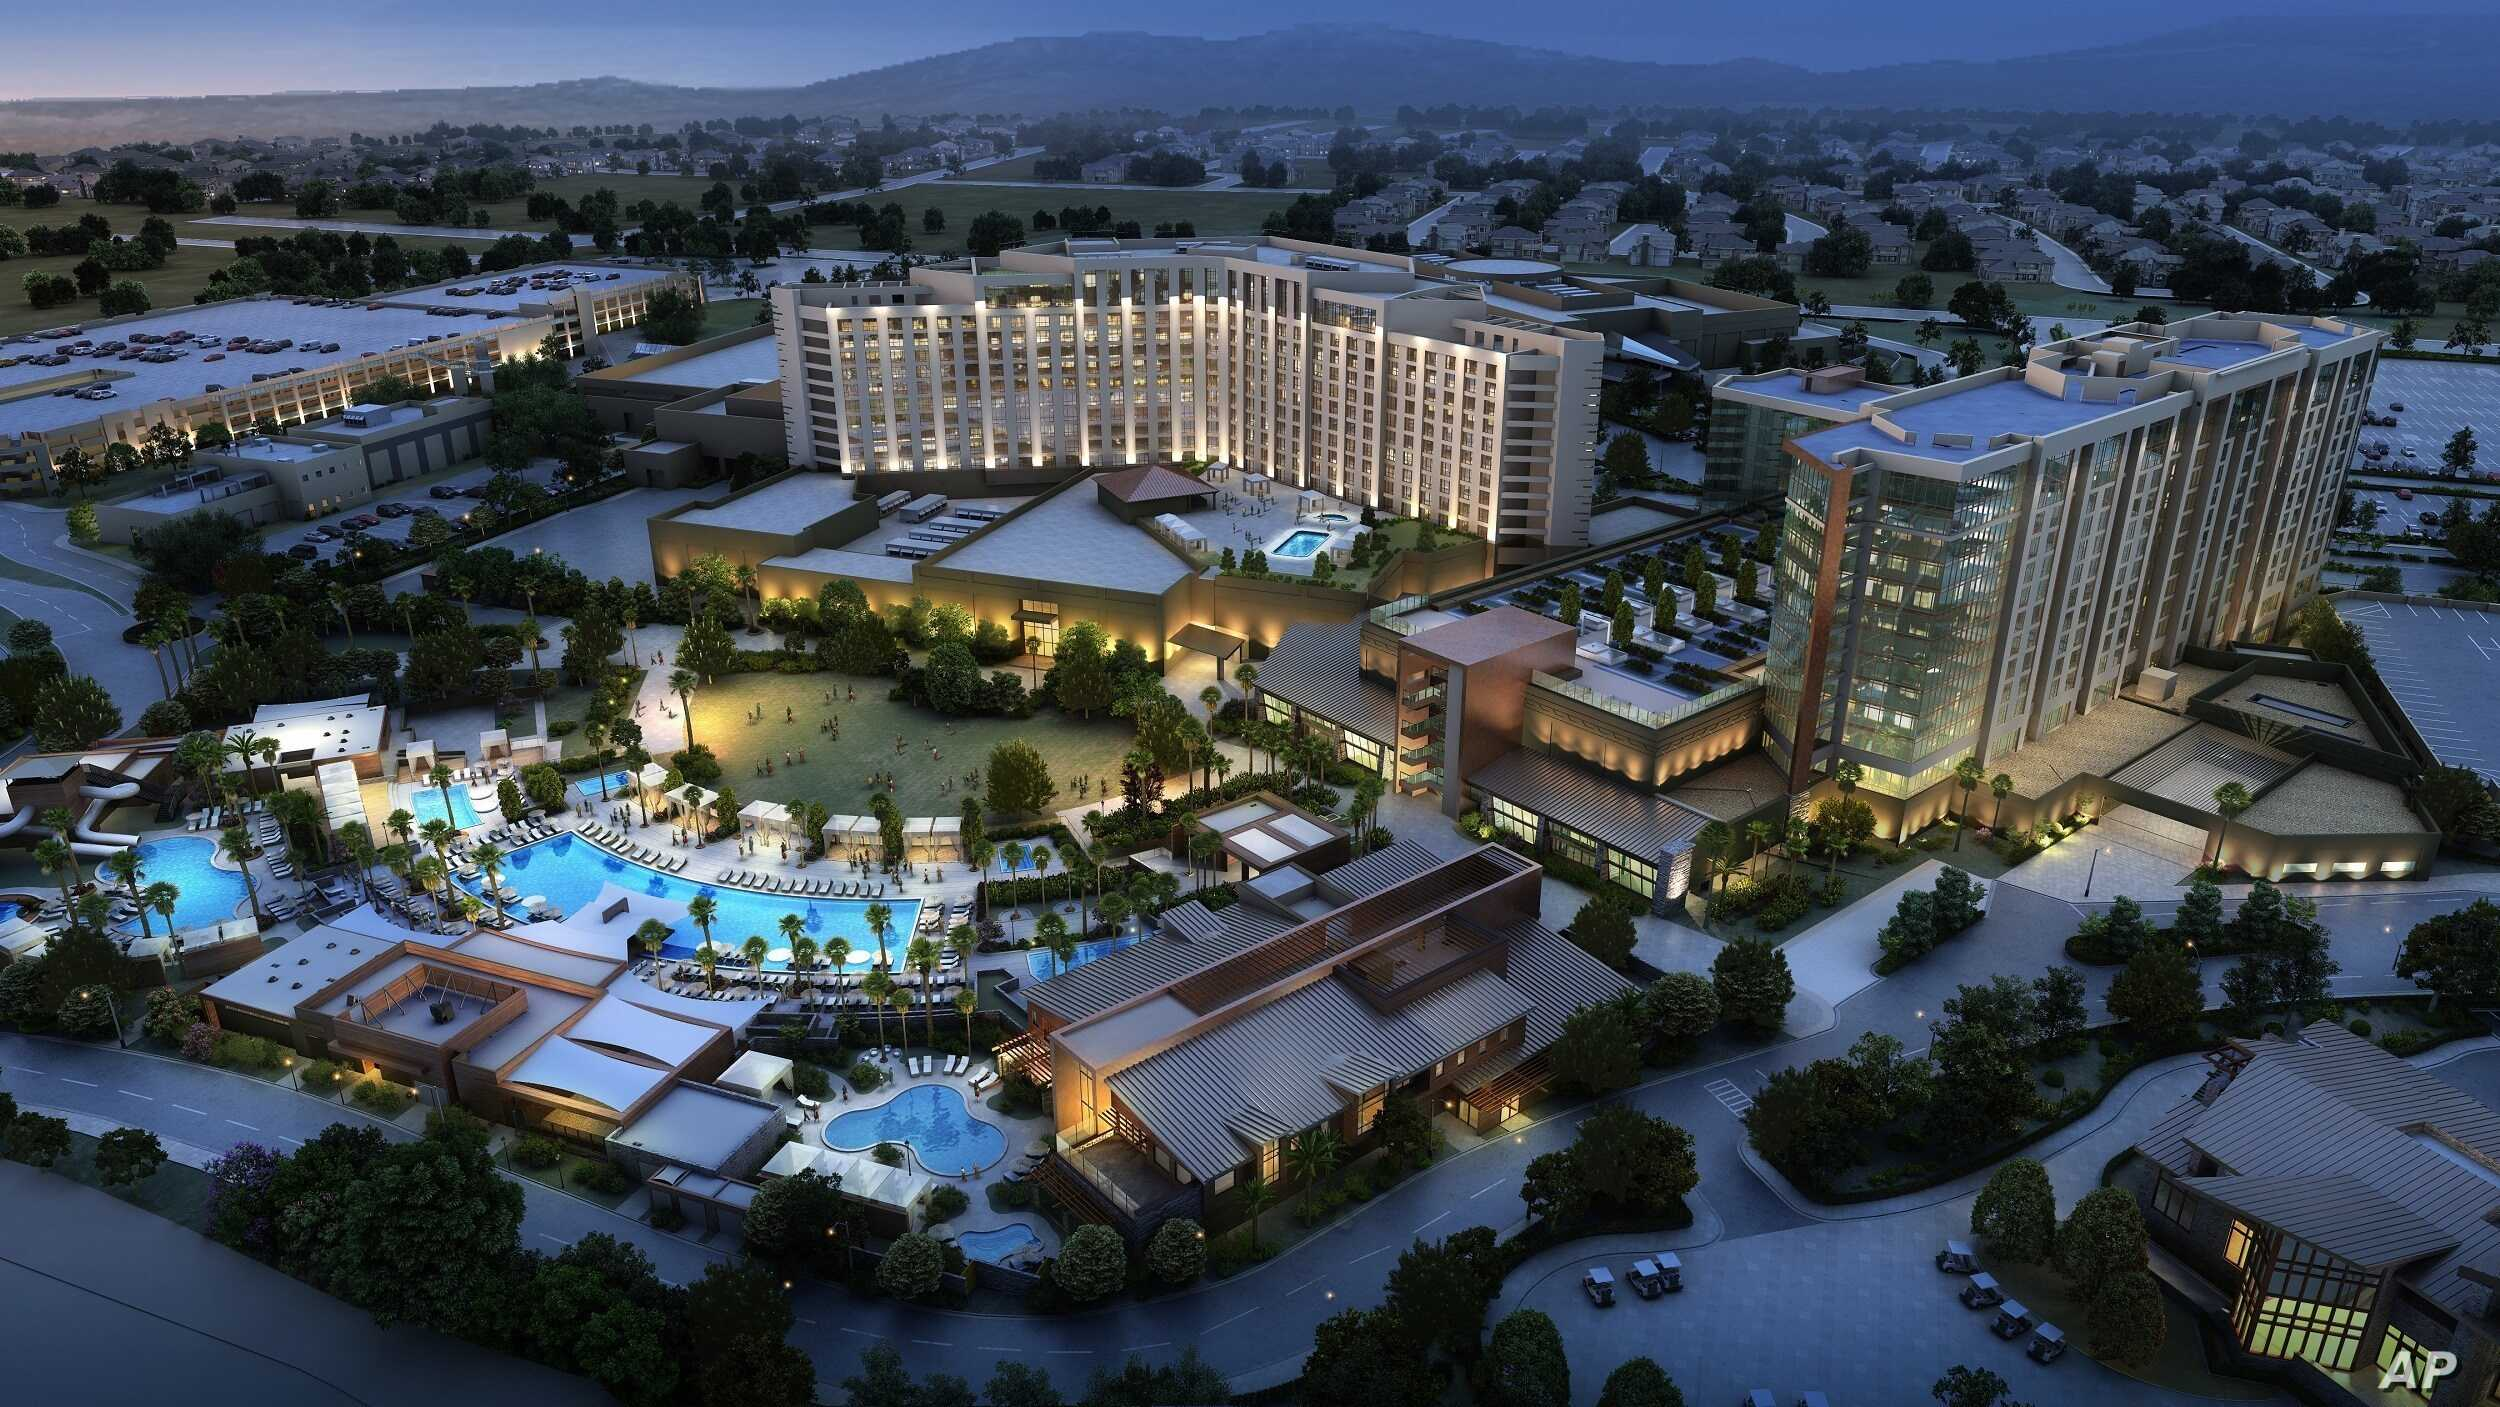 Pechanga Resort & Casino Resort Expansion Rendering. Project broke ground Dec. 16, 2015 and expected to be complete in 24 months. Pechanga is already the largest resort/casino in Calif. The expansion doubles the size of its resort offerings.